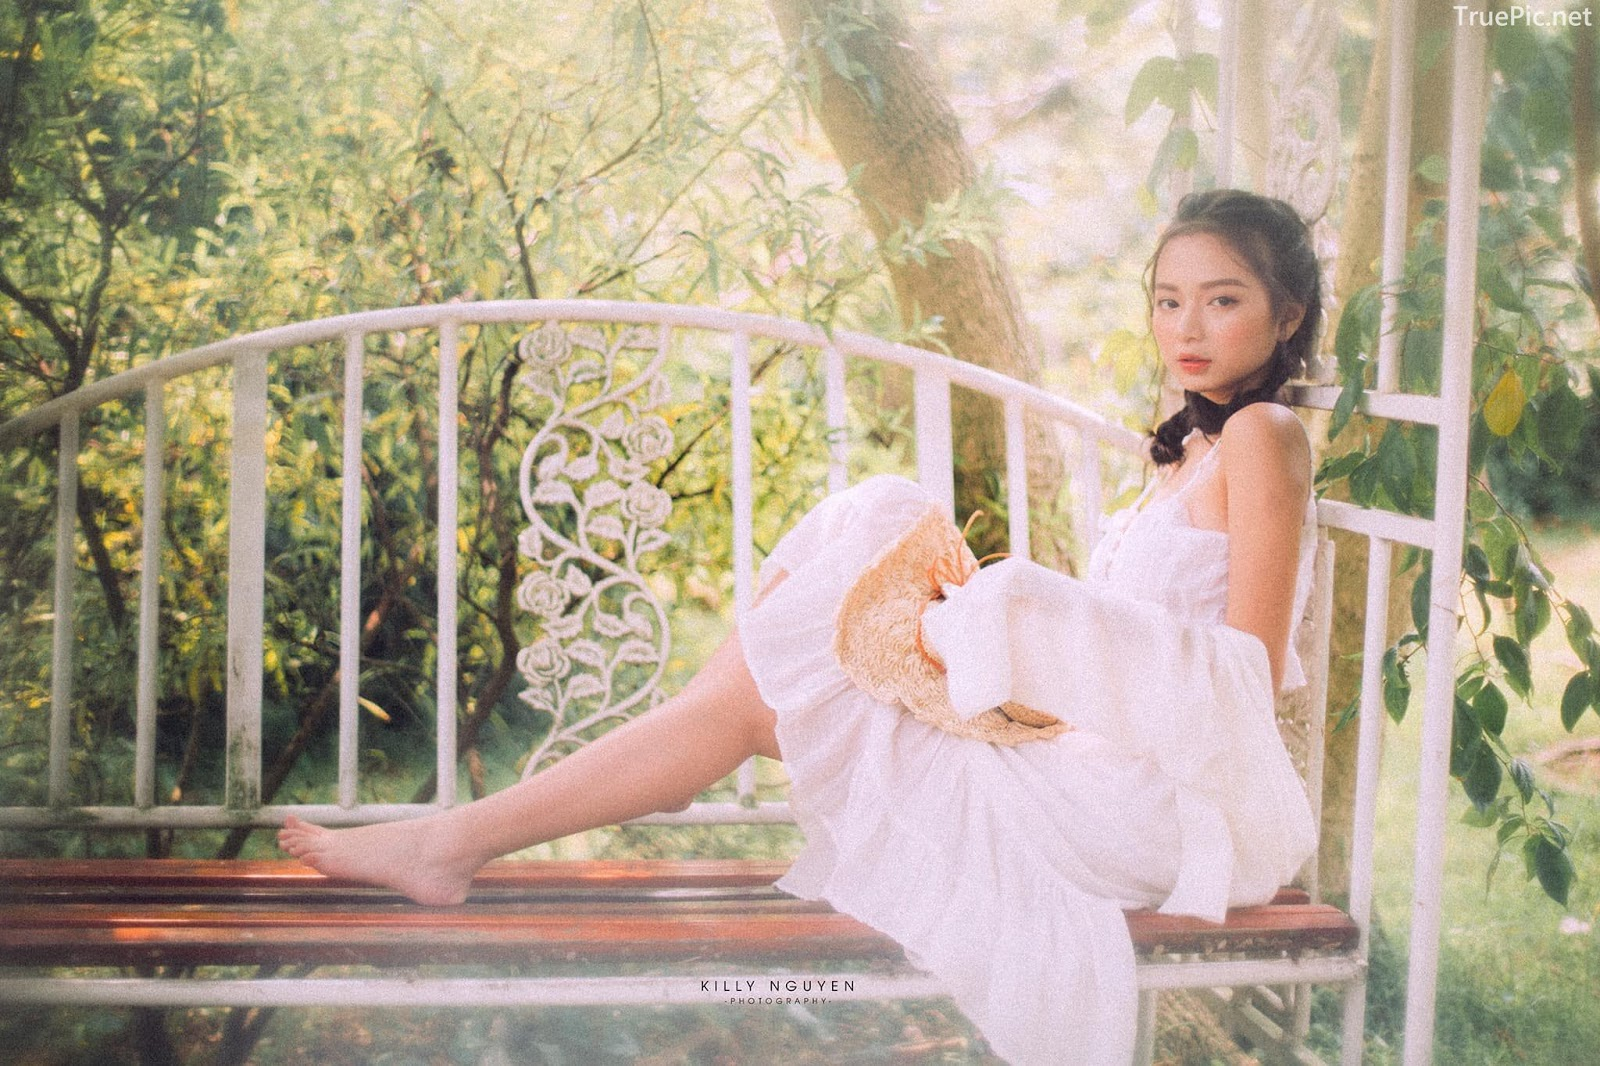 Vietnamese Sexy Model - Vu Ngoc Kim Chi - Beautiful in white - TruePic.net- Picture 39